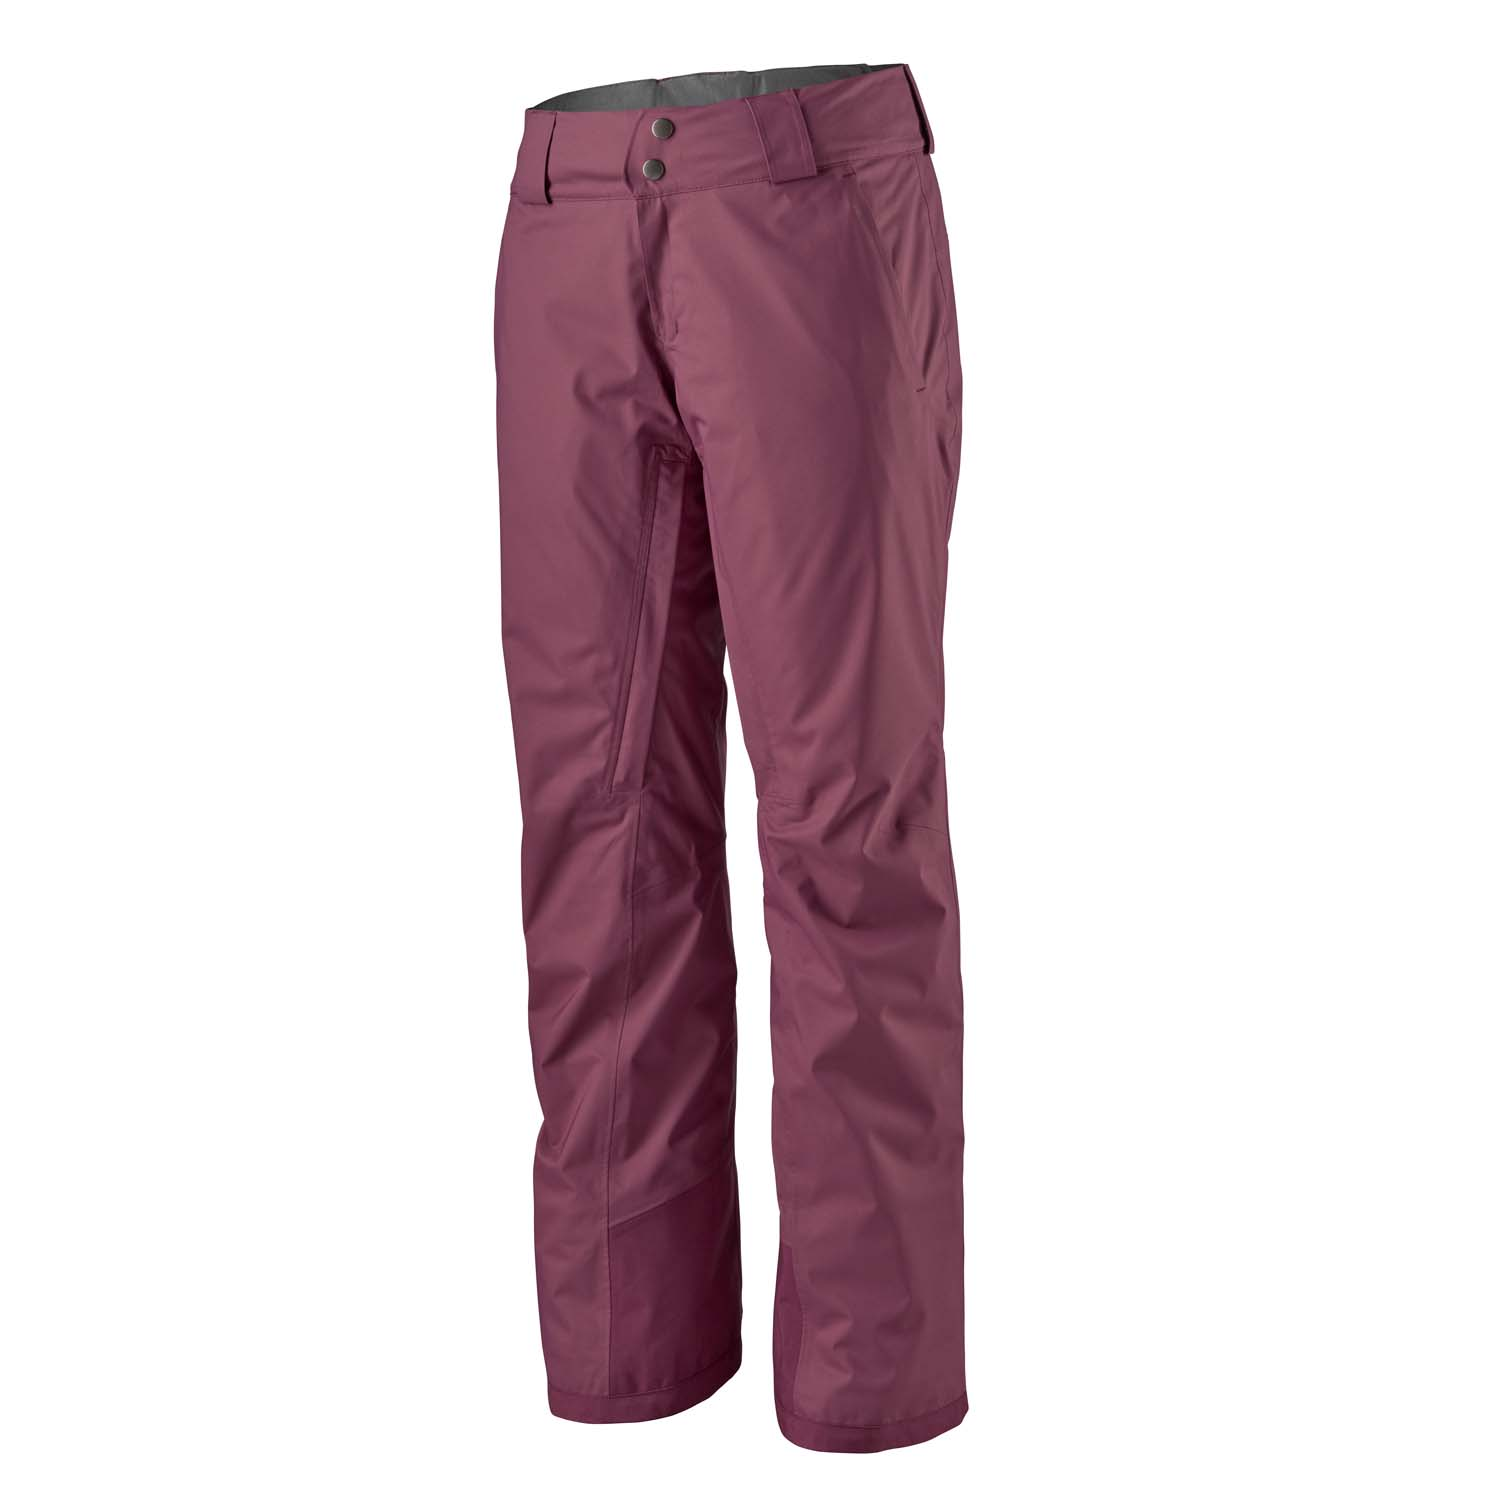 Patagonia Womens Insulated Snowbelle Pants Light Balsamic 2020